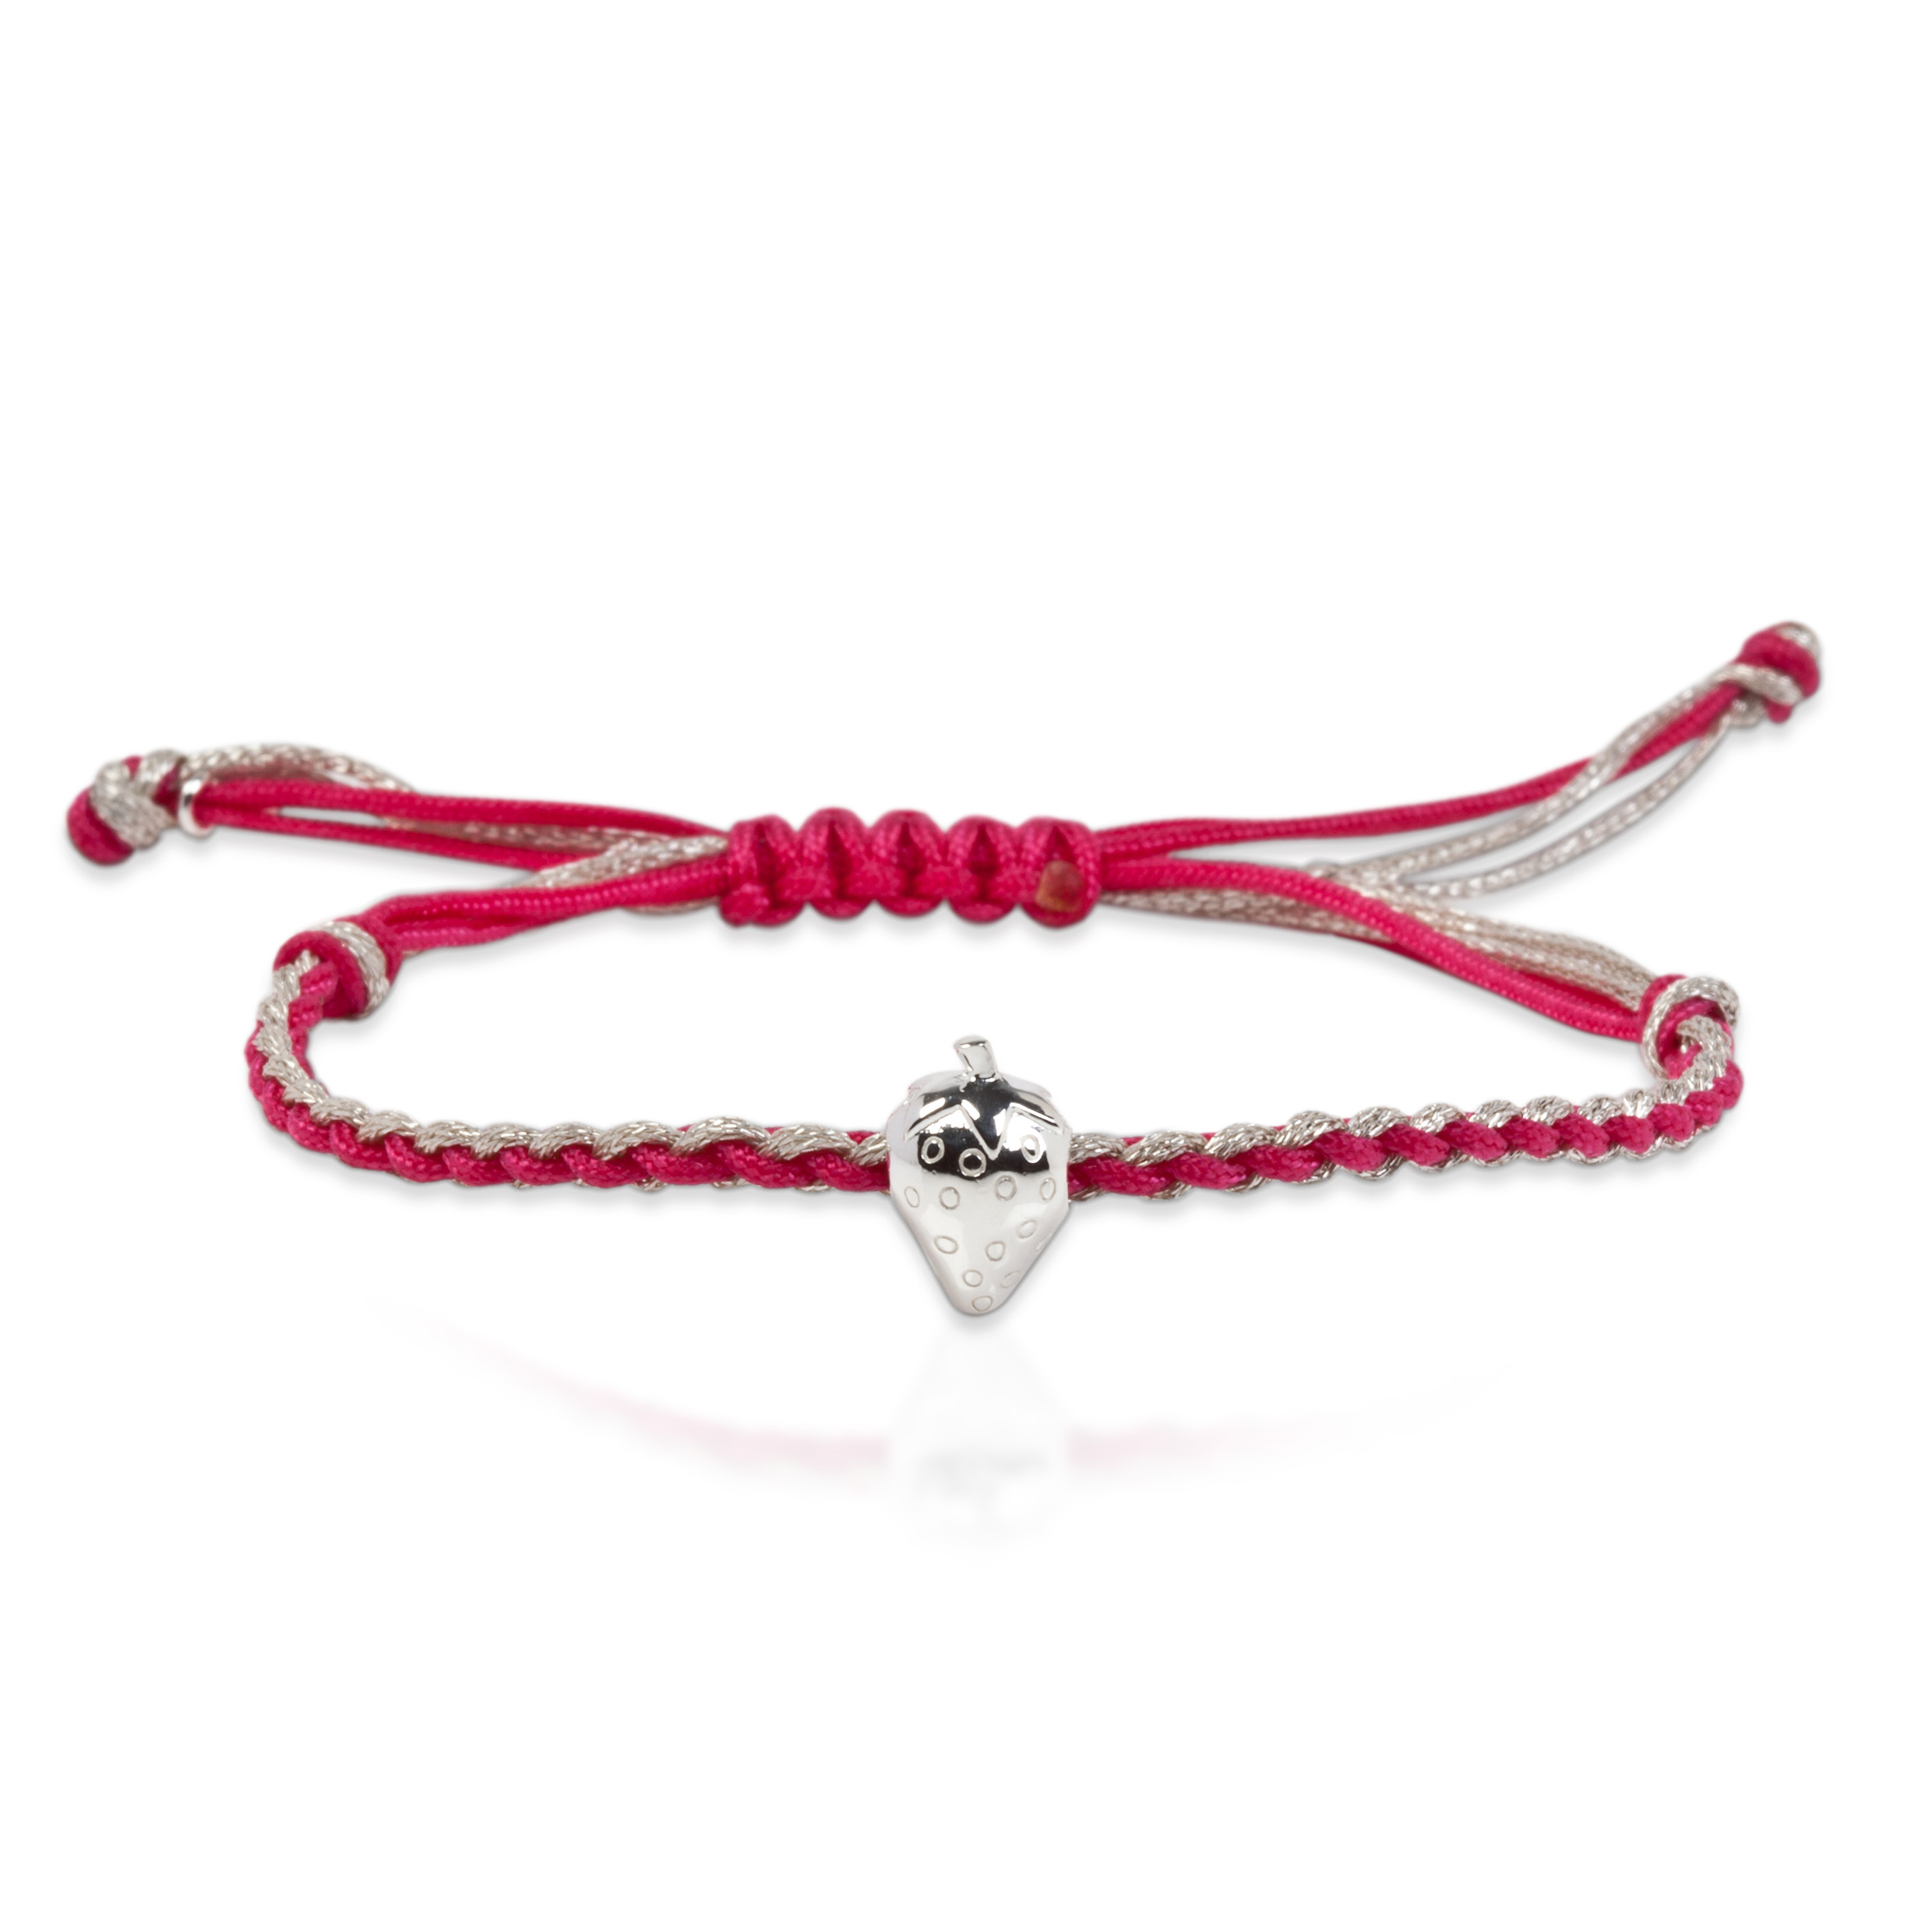 Wimbledon Strawberry Cord Bracelet